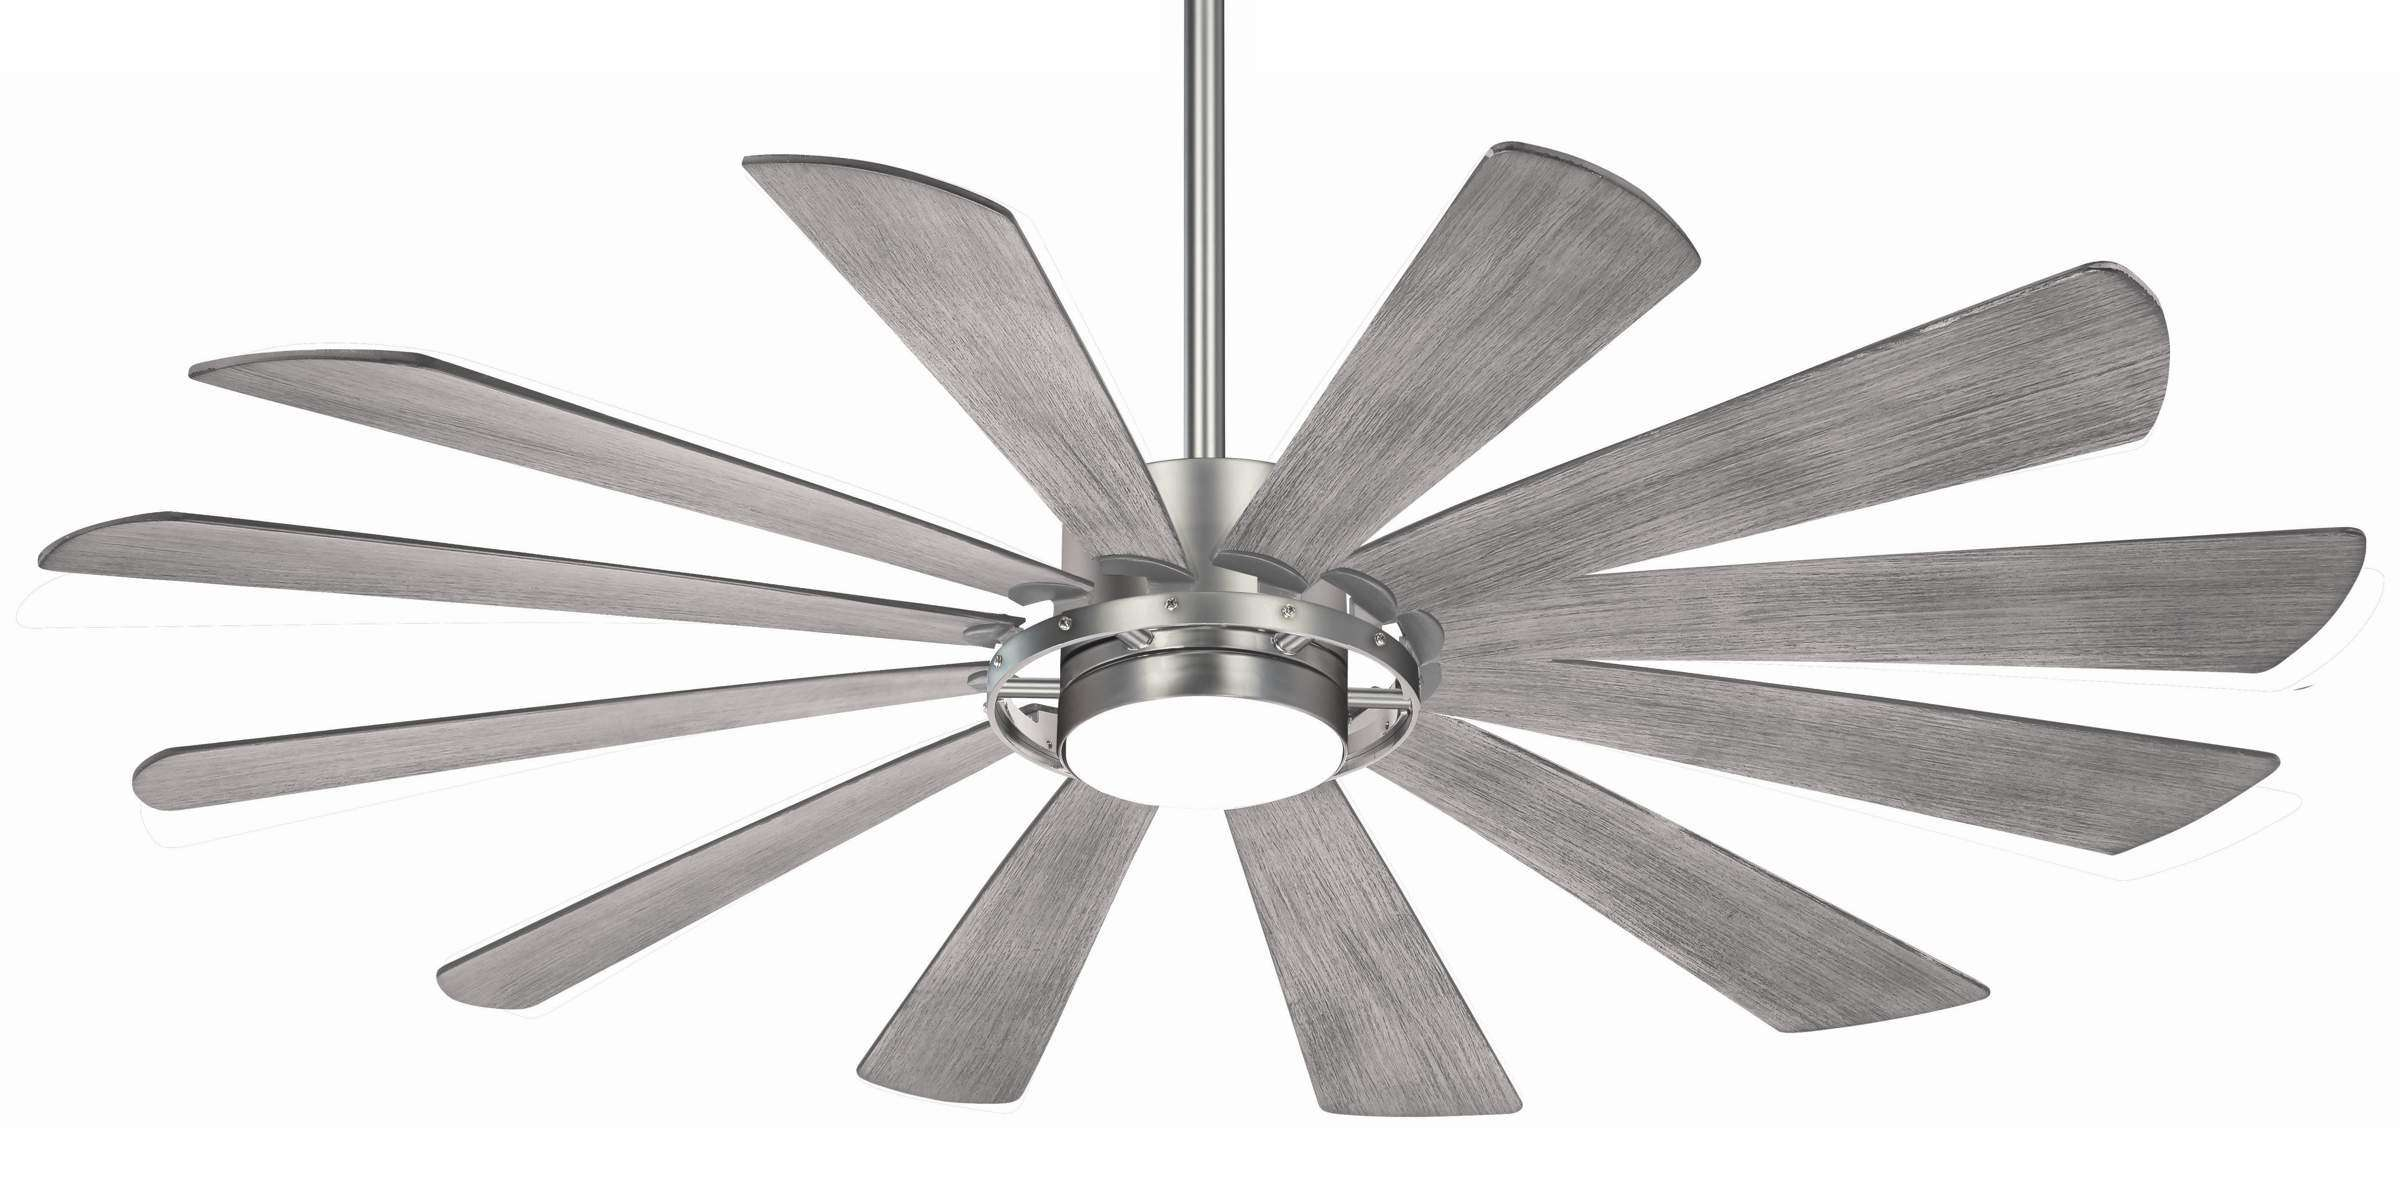 Minka Aire F870L-BS 65 Inch Windmolen Ceiling Fan in Brushed Steel